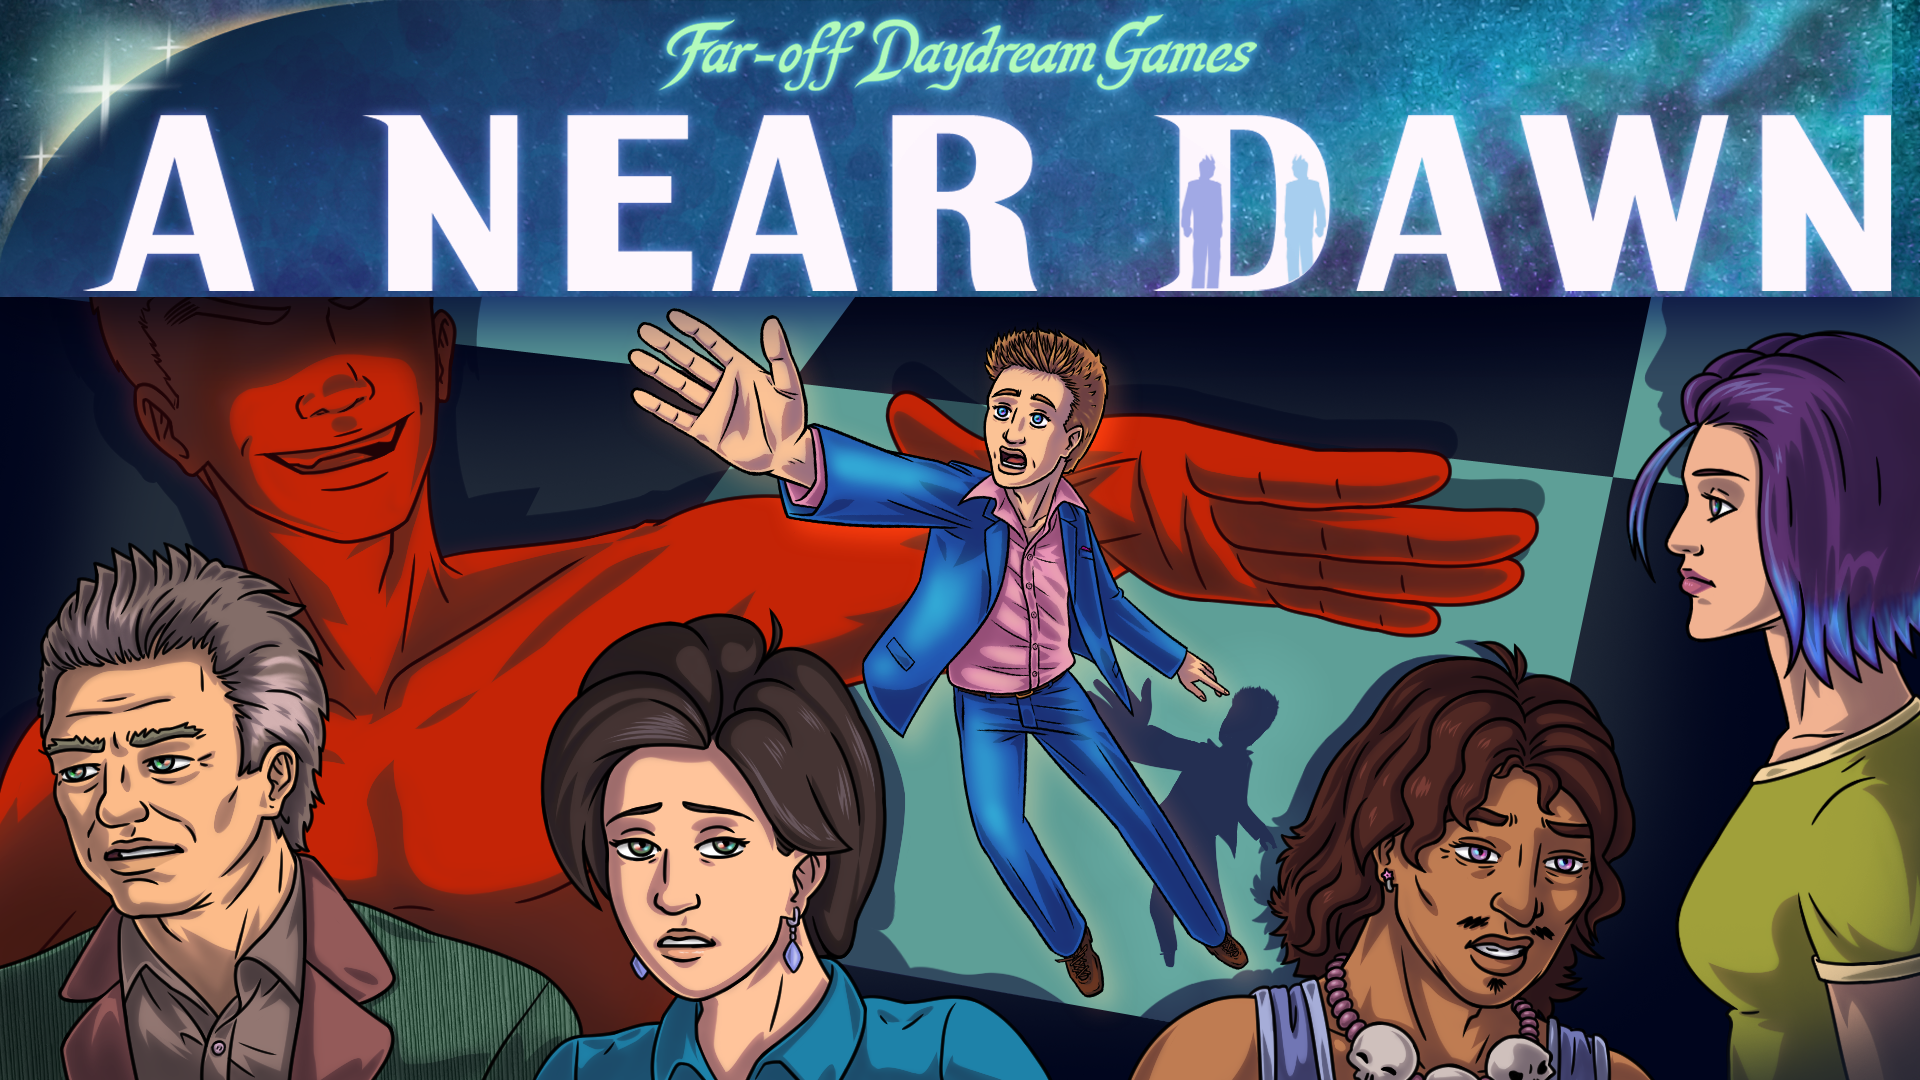 A Near Dawn | Dark Funny Adventure Game on KickStarter! - #UD 1